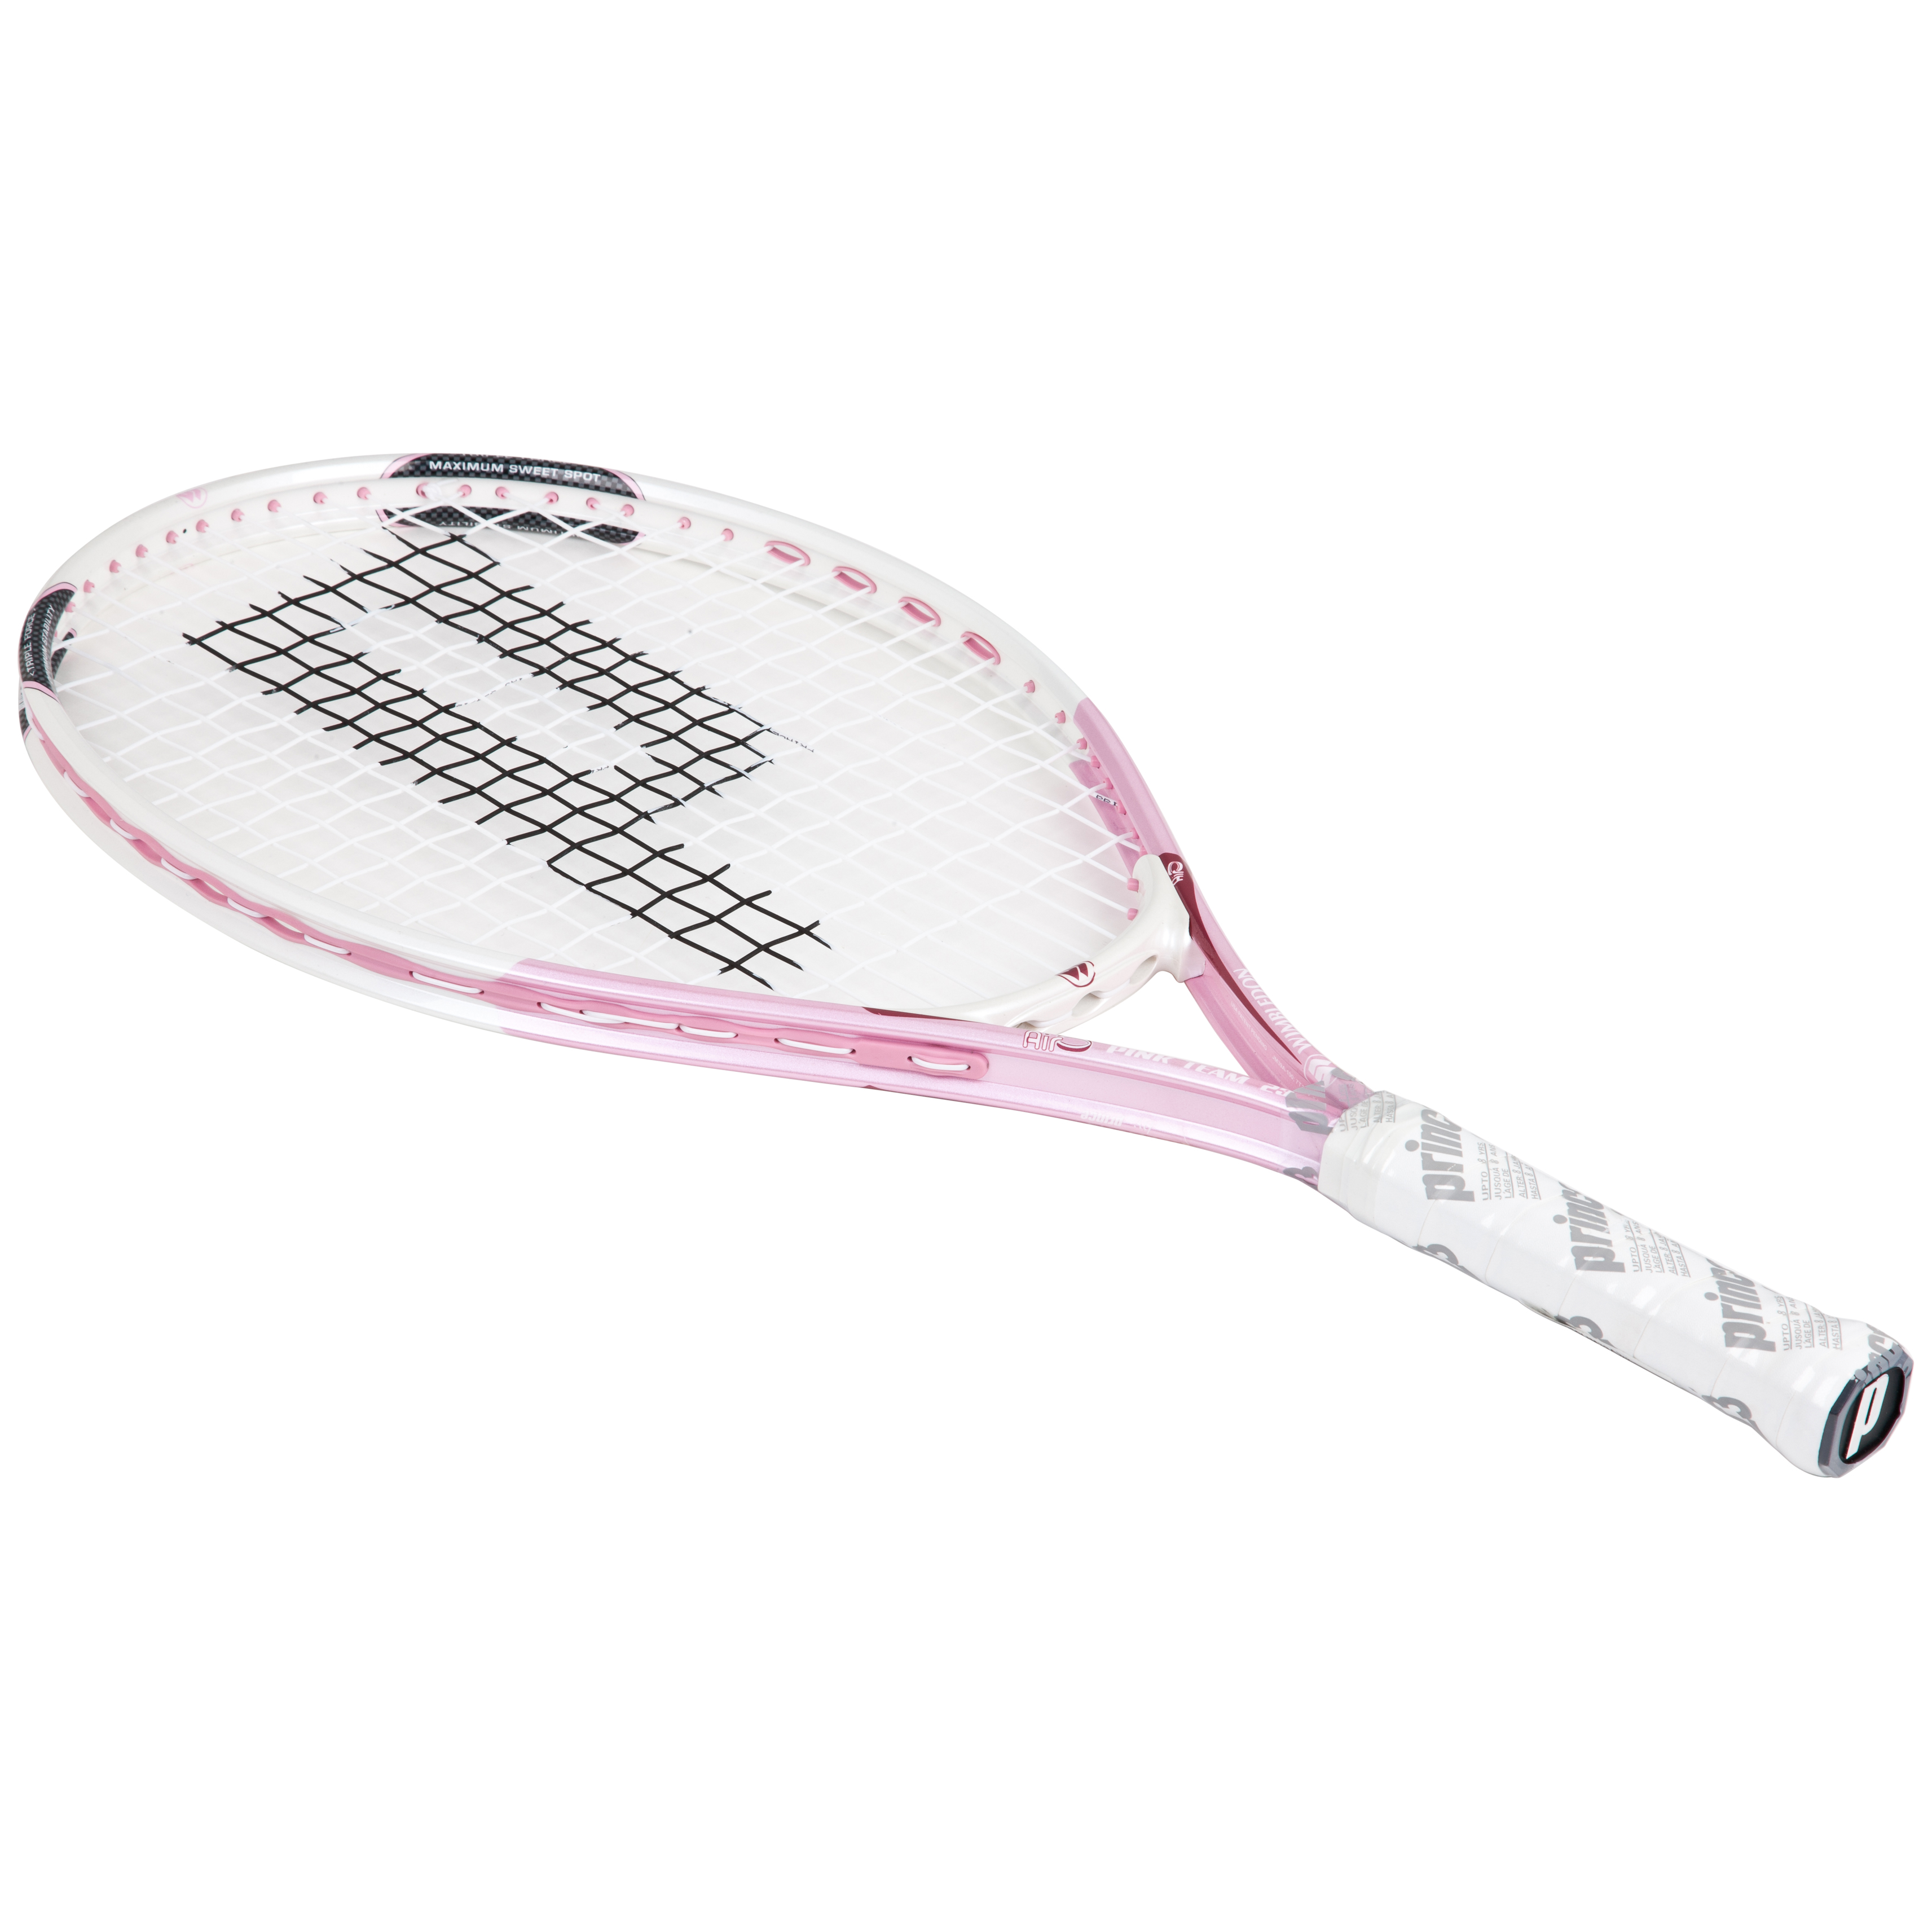 Wimbledon By Prince Airo Pink Team 23 Tennis Racket - White/Pink